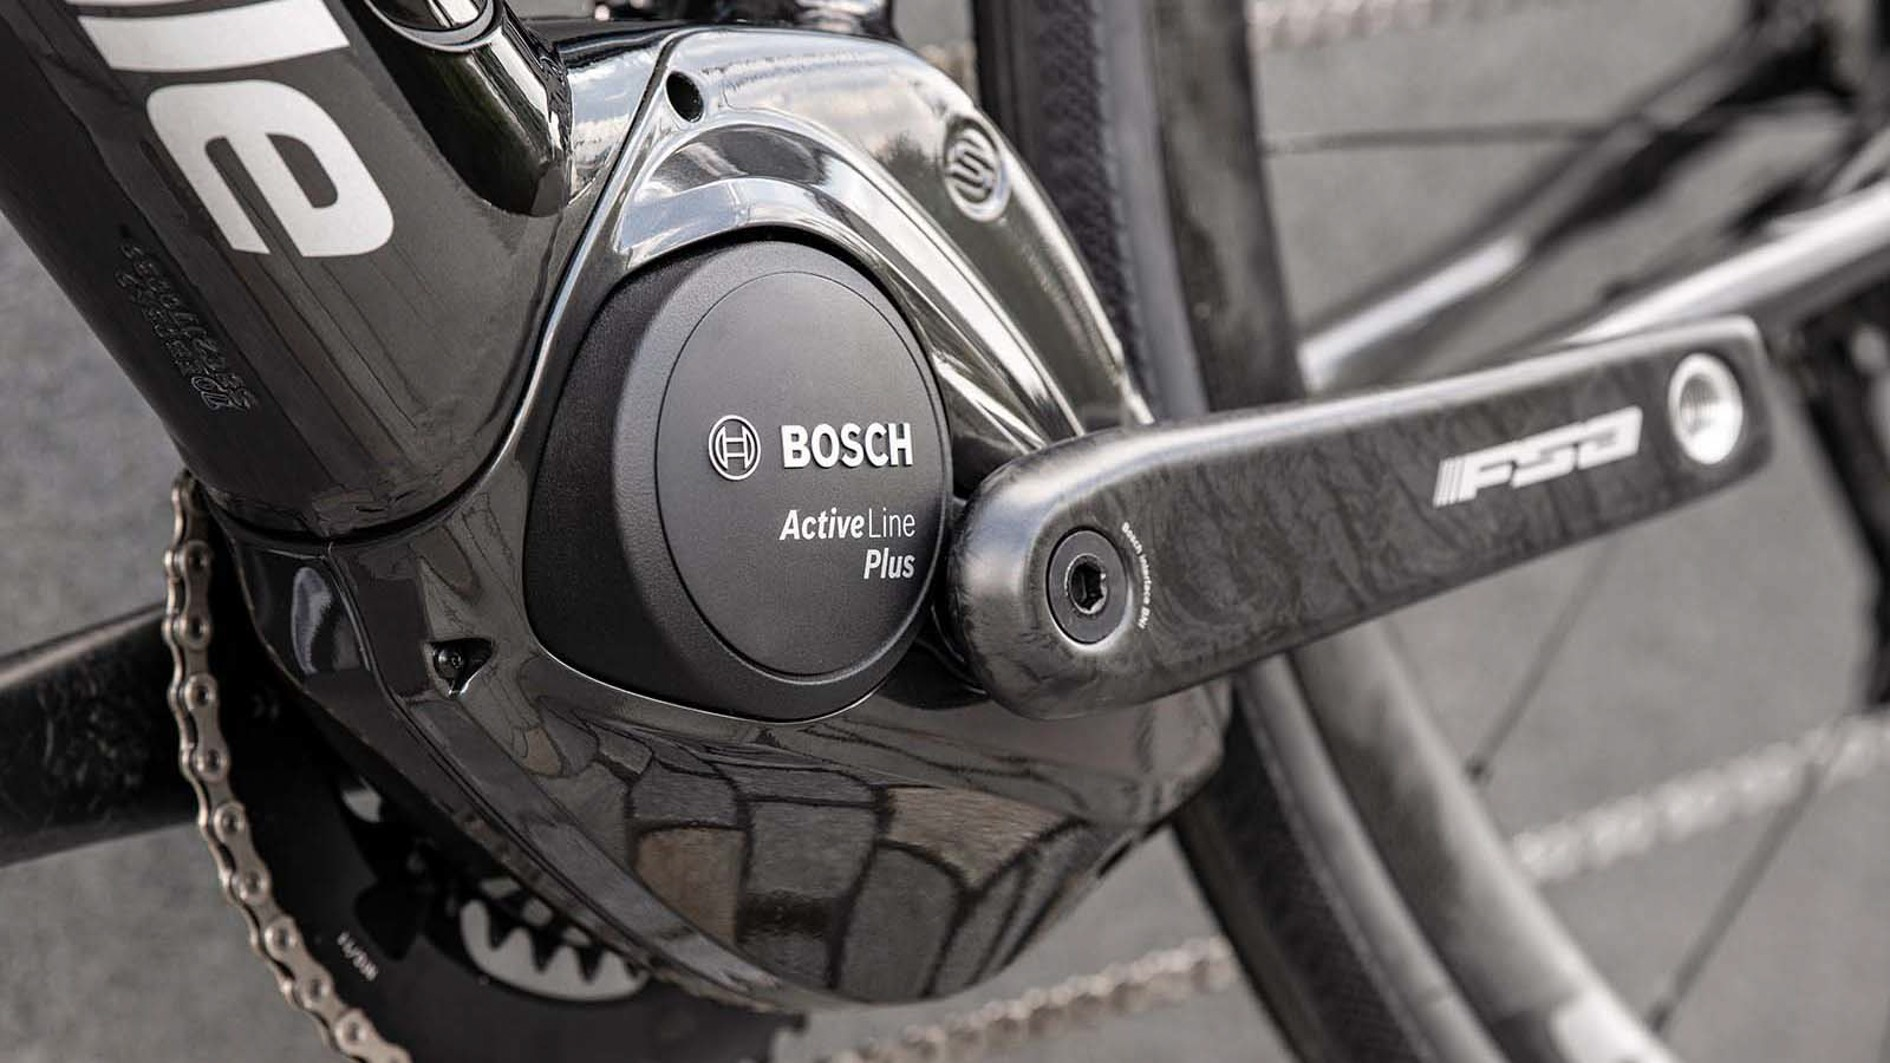 The bike is built around Bosch's Active Line Plus motor